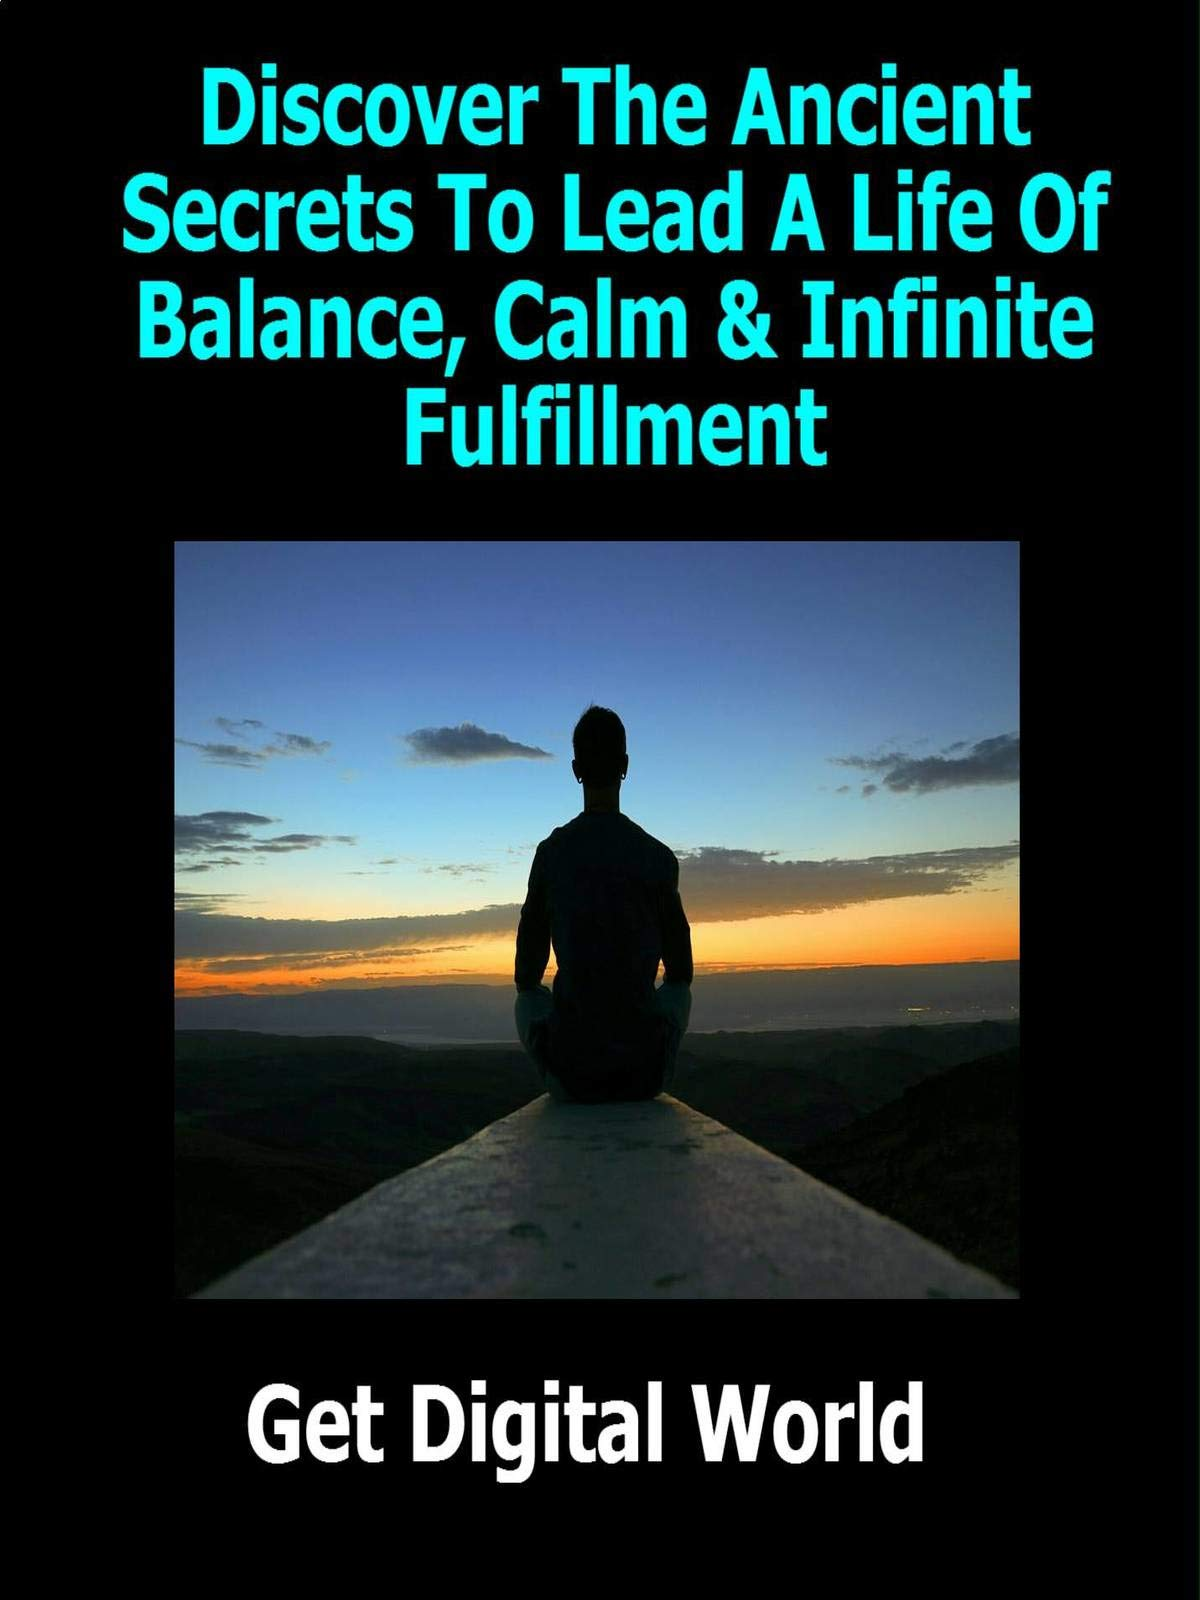 Discover The Ancient Secrets To Lead A Life Of Balance, Calm & Infinite Fulfillment